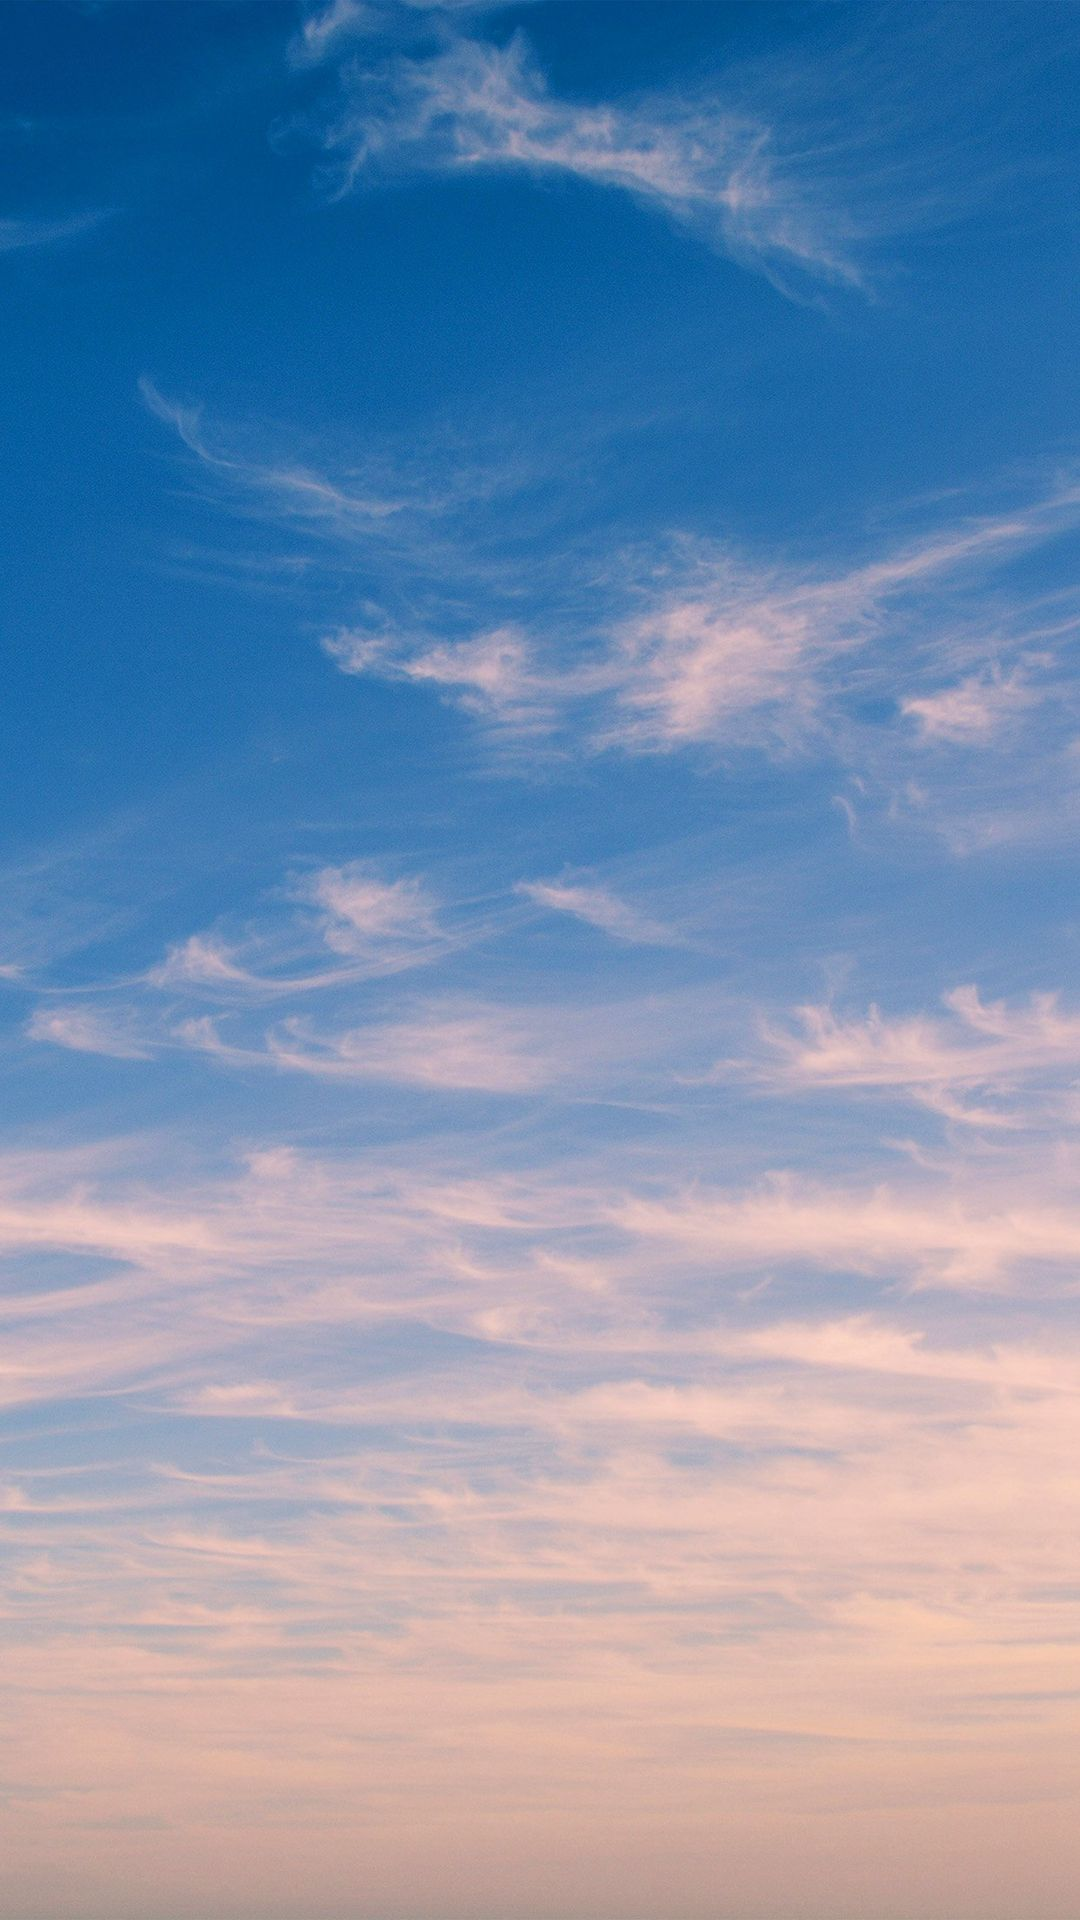 Wallpaper iphone sky - Sky Blue Cloud Nature Sunny Summer Iphone 6 Plus Wallpaper